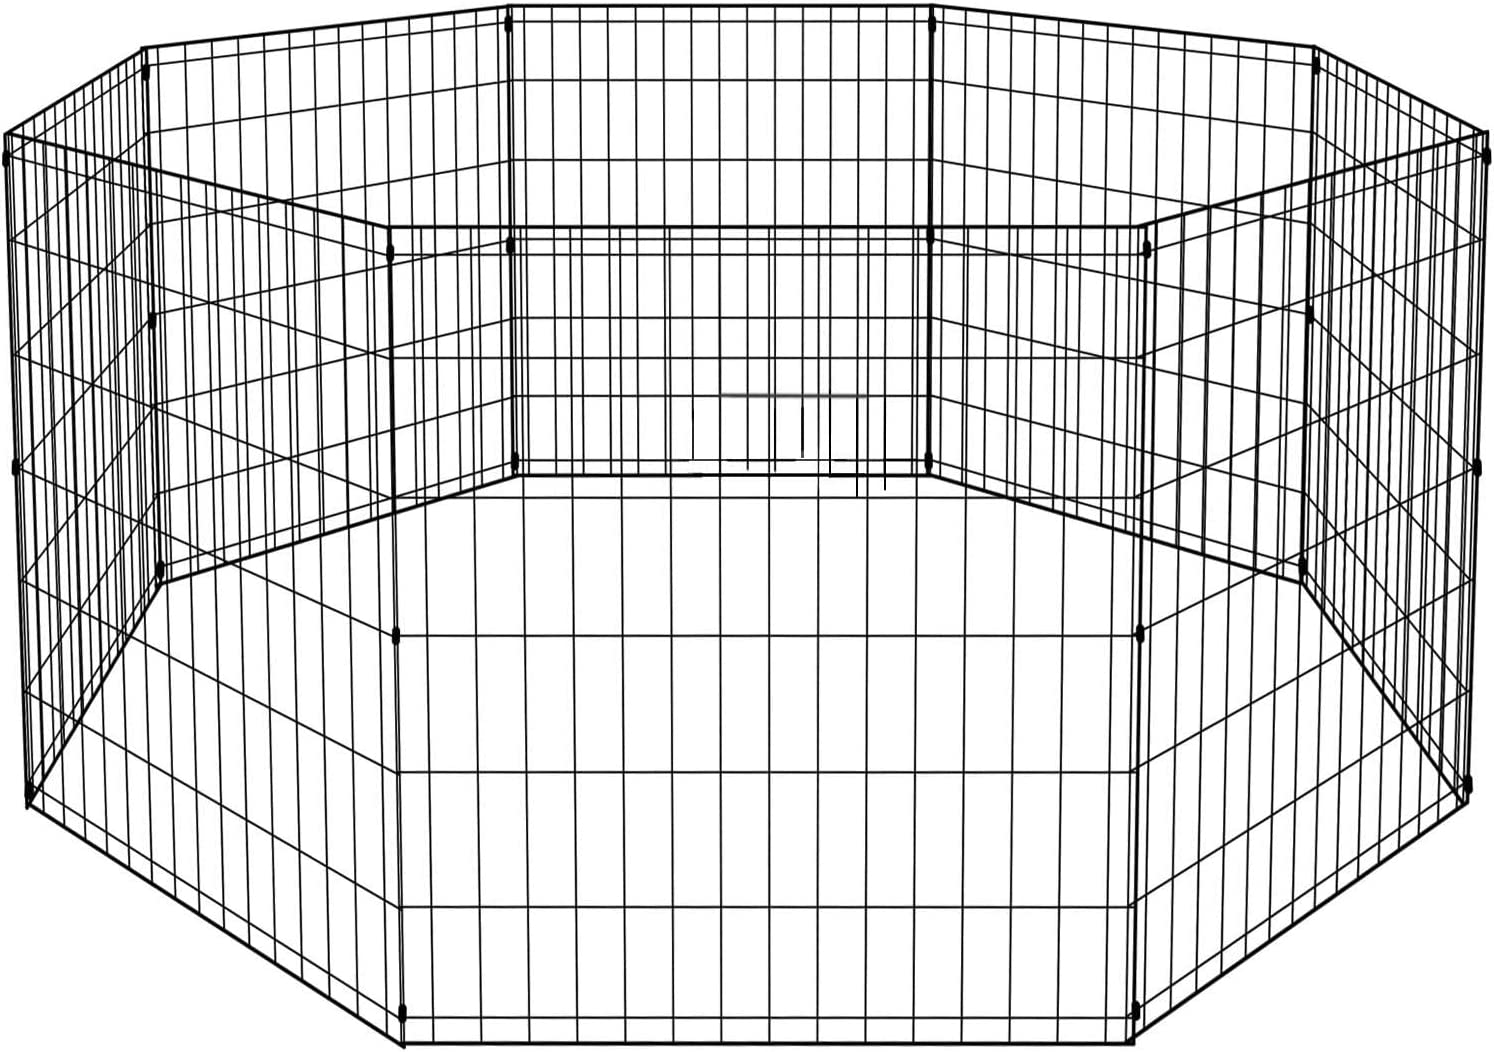 Tffnew Pet Dog Playpen 8 Special Campaign Panel Crate Outdoor Kennel F Indoor price